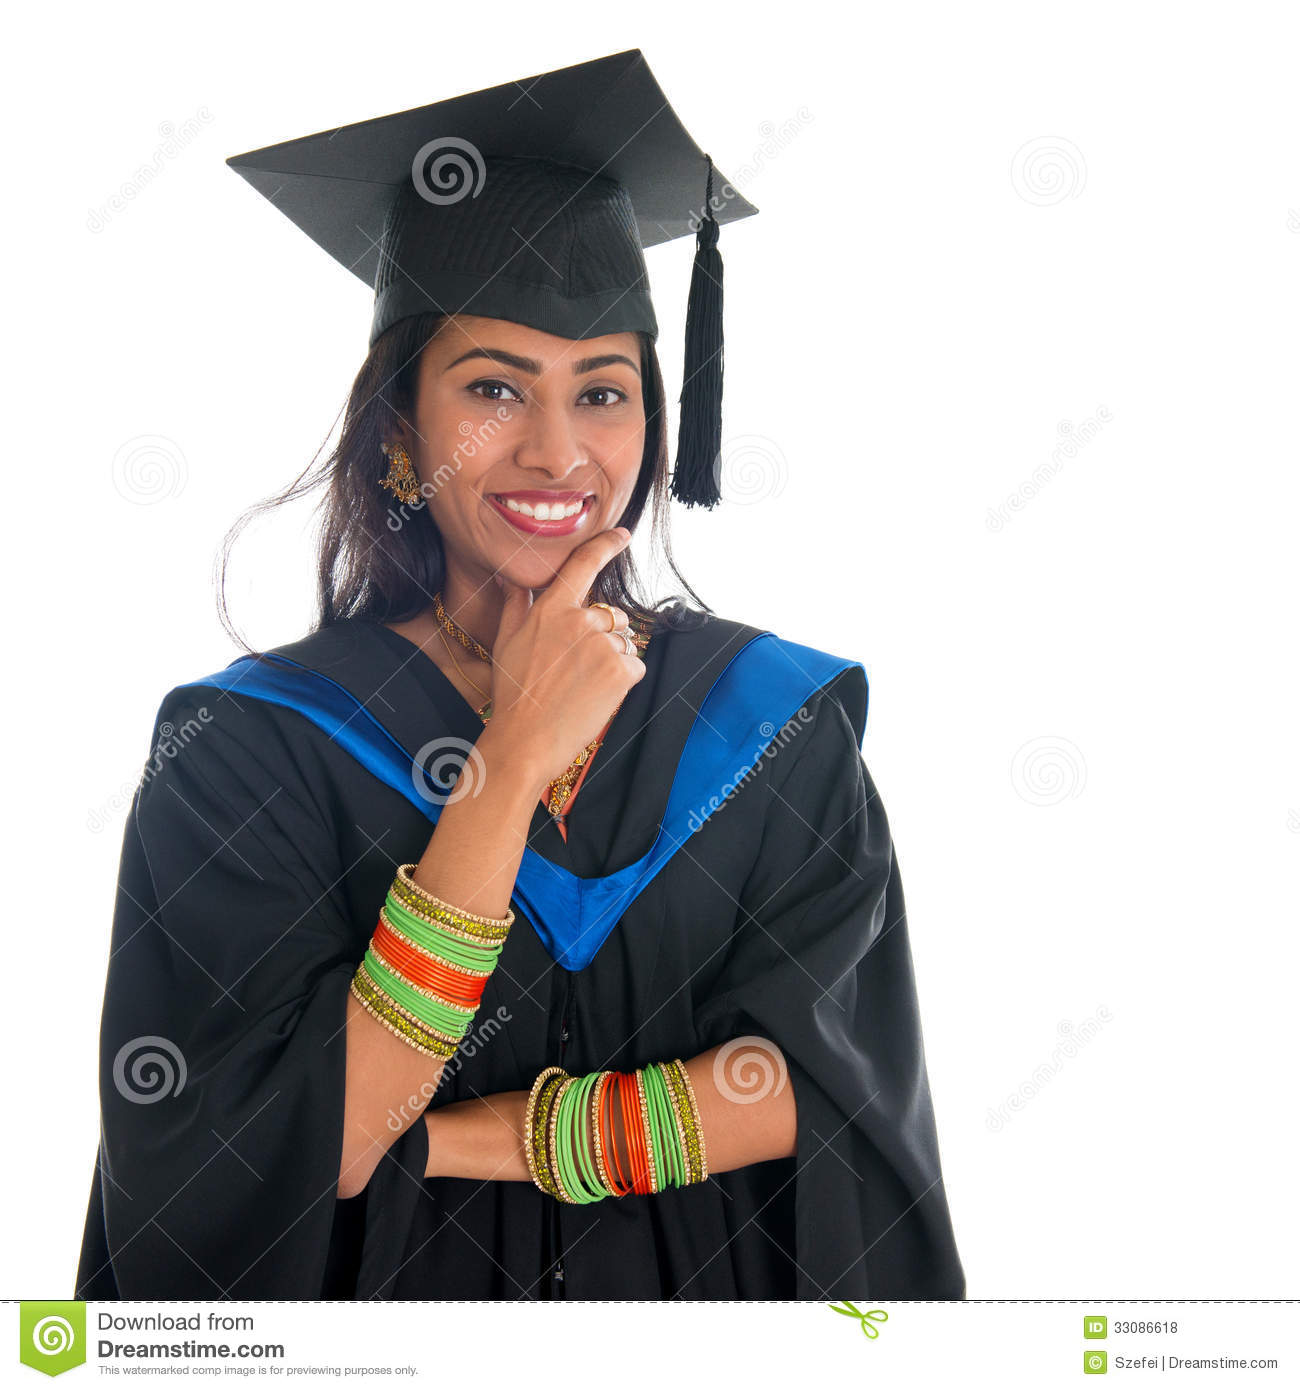 29dfc9bfa12 Happy Indian university student in graduation gown and cap thinking.  Portrait of mixed race Asian Indian and African American female model  standing isolated ...